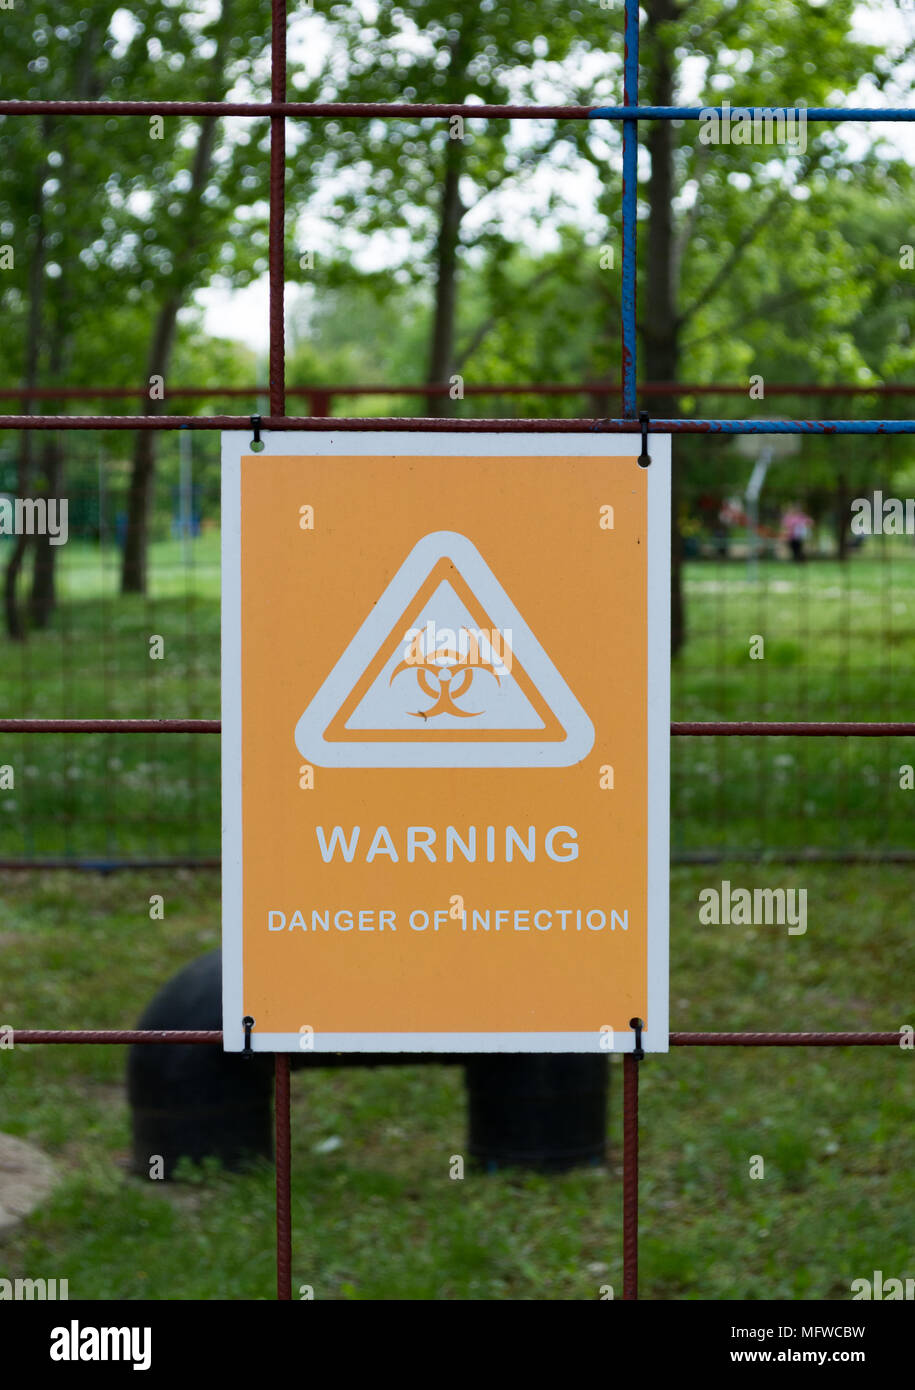 Biohazard sign with text: Warning! Danger of infection. Warning radiation hazard. Warning sign. Stock Photo